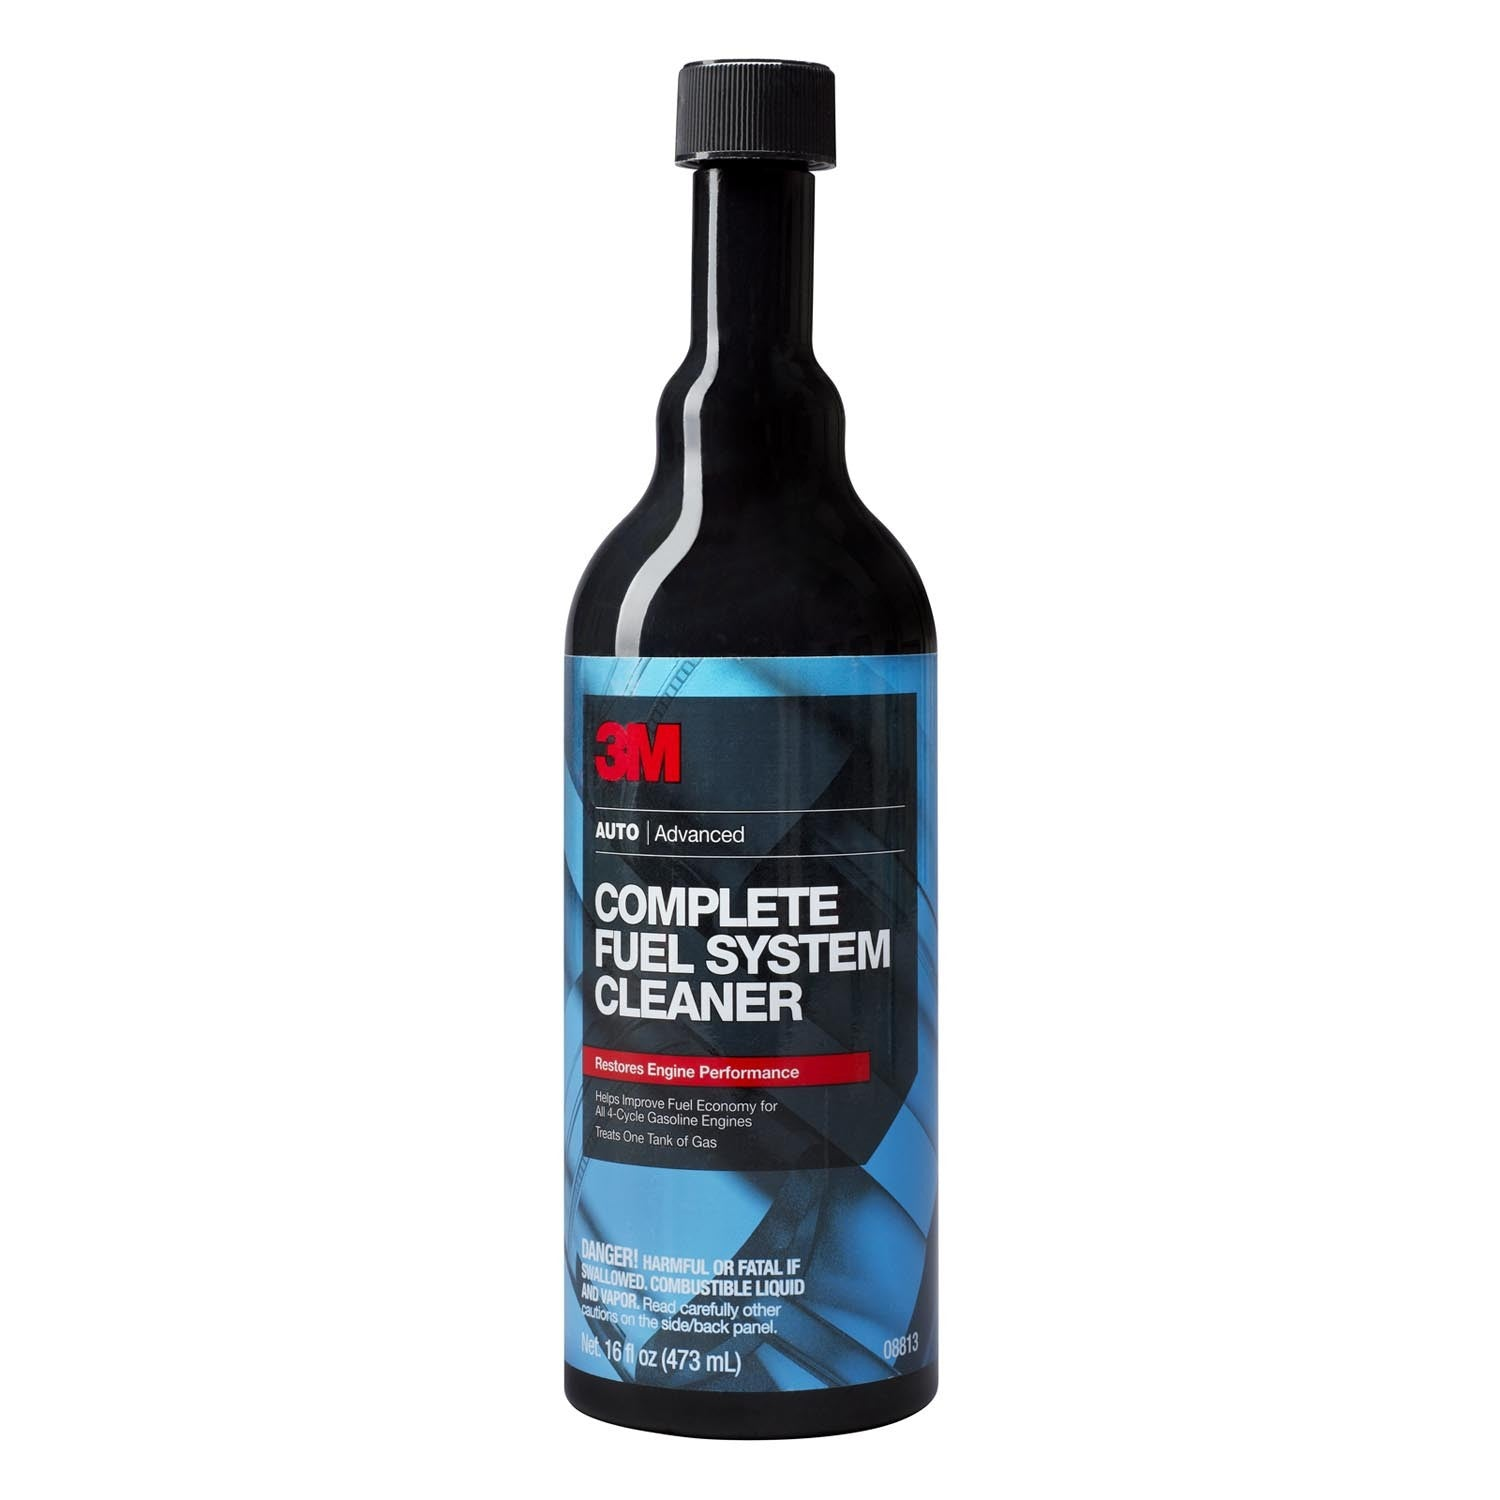 3M Complete fuel System Cleaner, 16oz./473ml